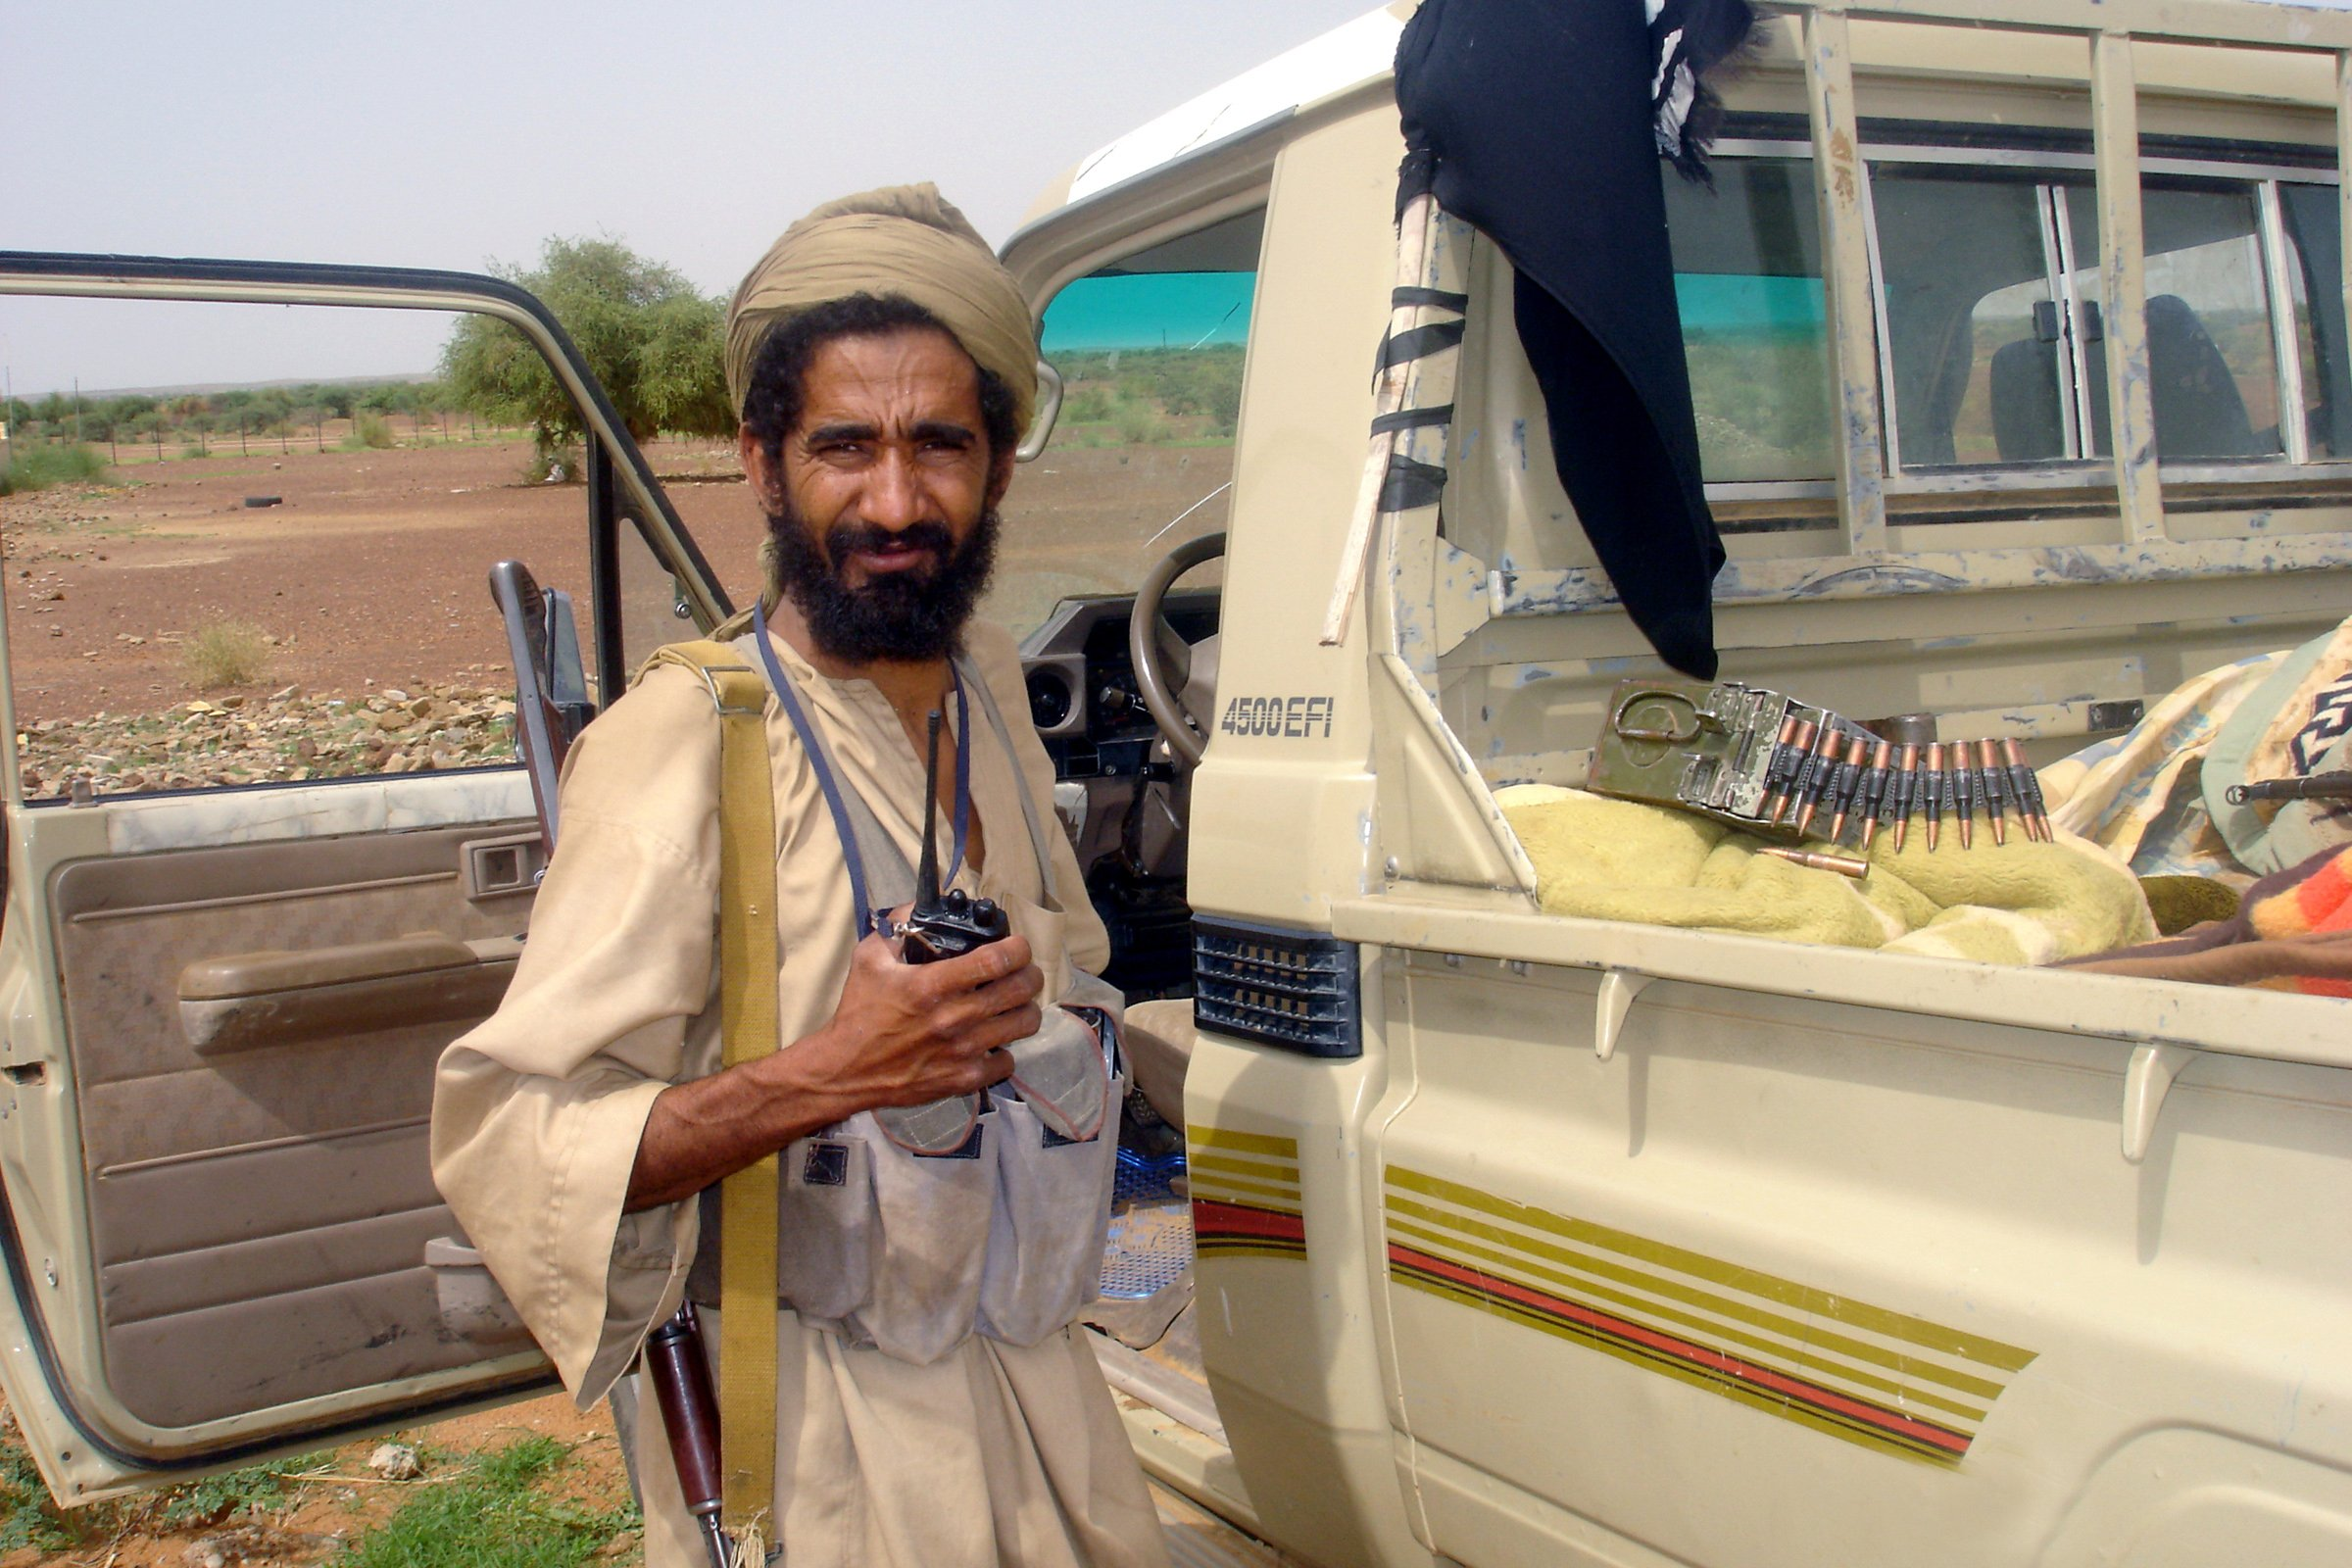 MUJAO: Commander with the Unity Movement for Jihad in West Africa (MUJAO) in Gao